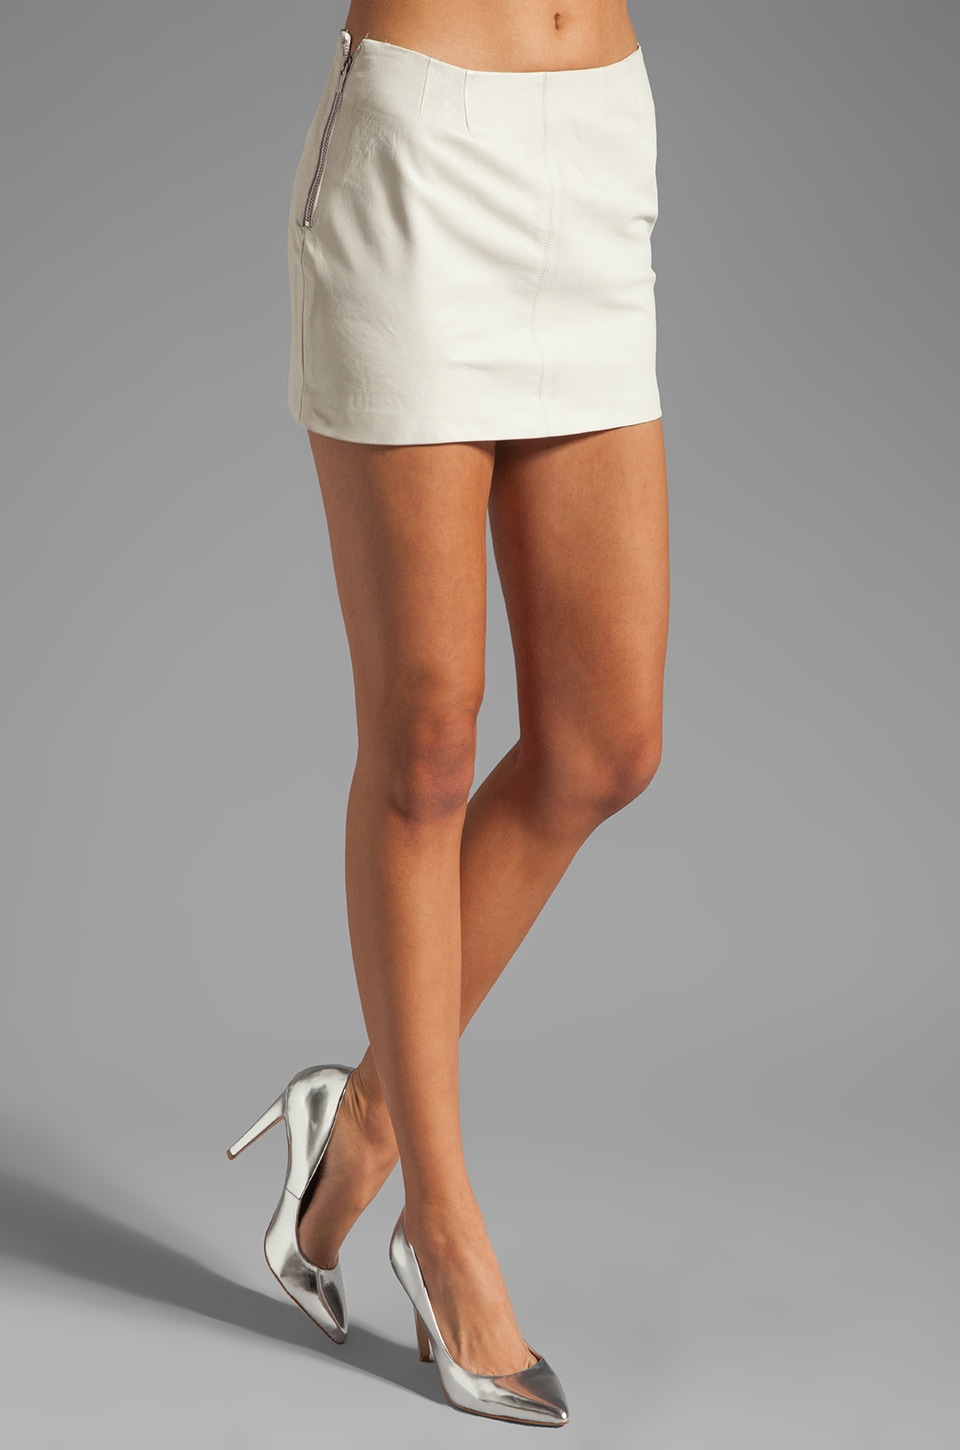 VEDA Bow Leather Skirt in White